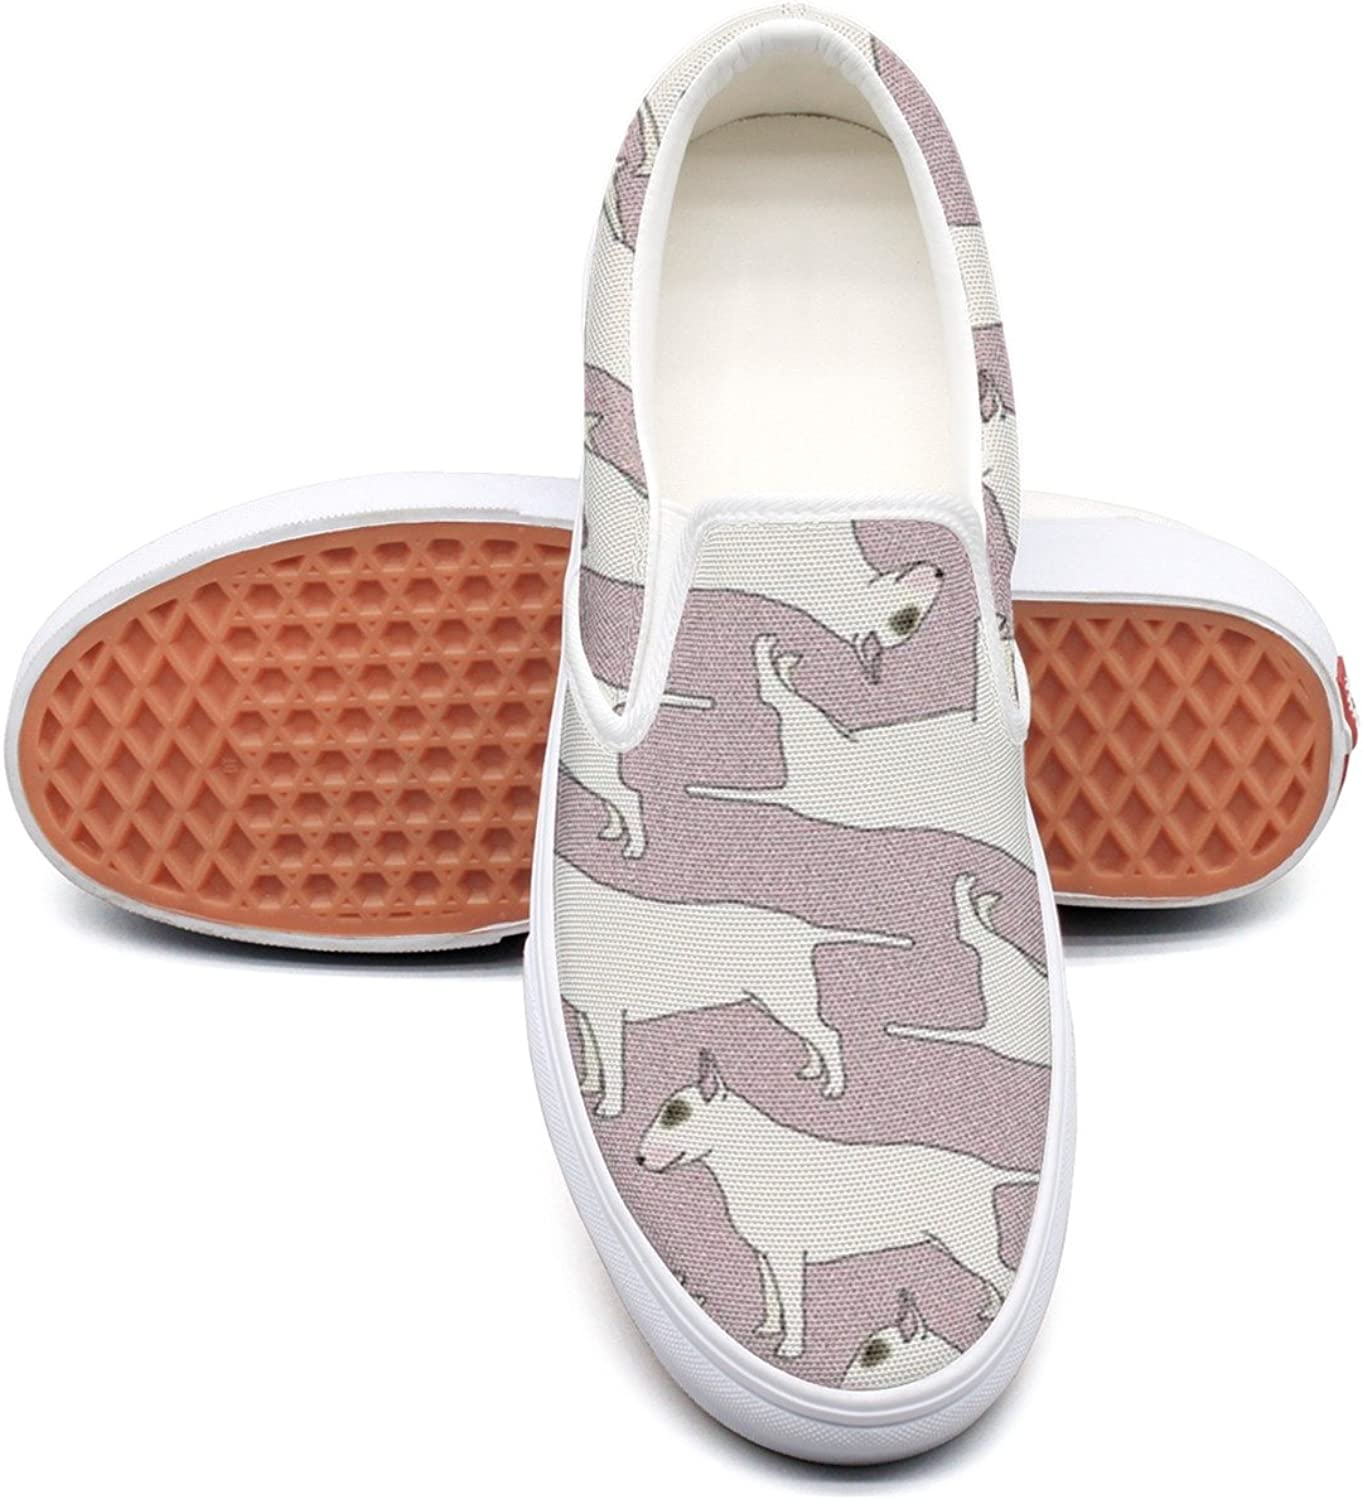 Vintage Bull Terrier Pattern Womens Light Canvas Sneakers Low Top Comfortable Sneakers shoes For Women's